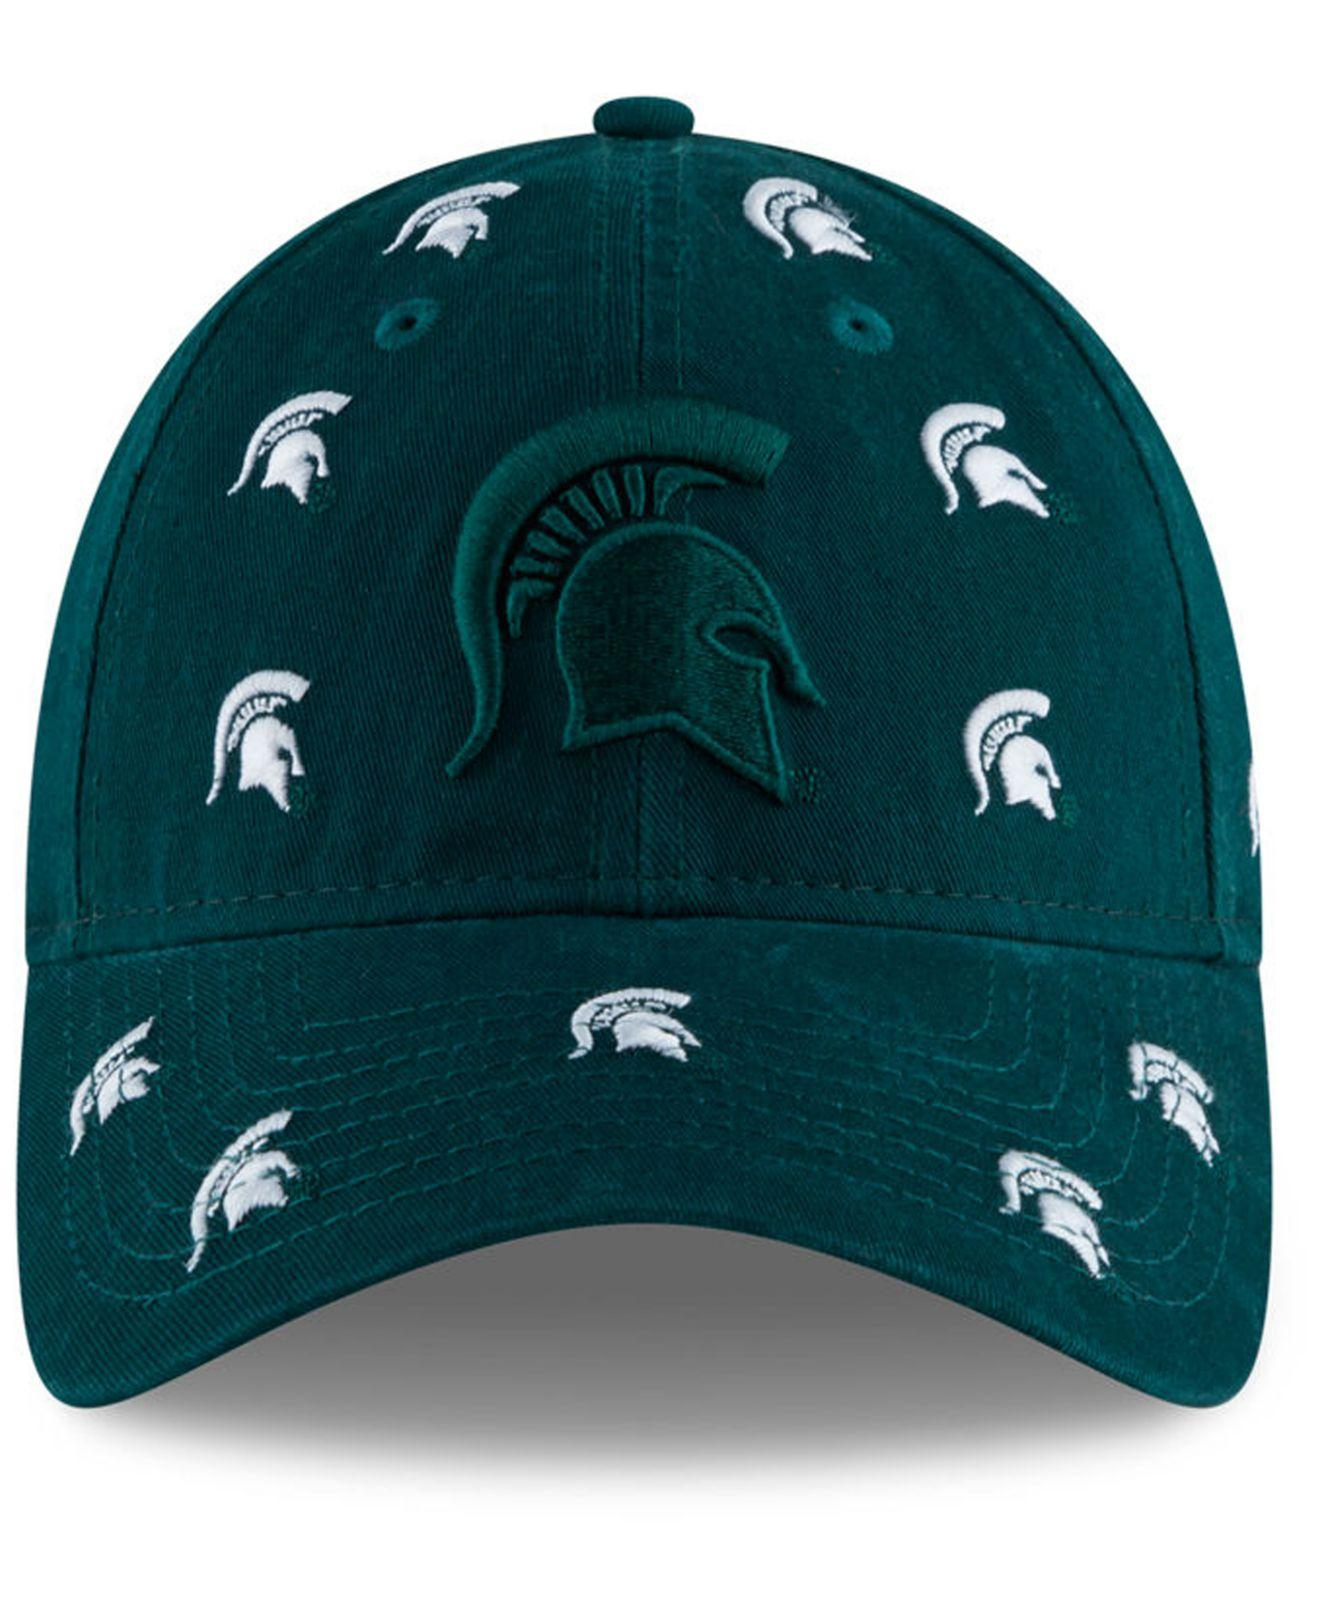 Lyst - KTZ Michigan State Spartans Logo Scatter Cap in Green 2ad927a8fe68